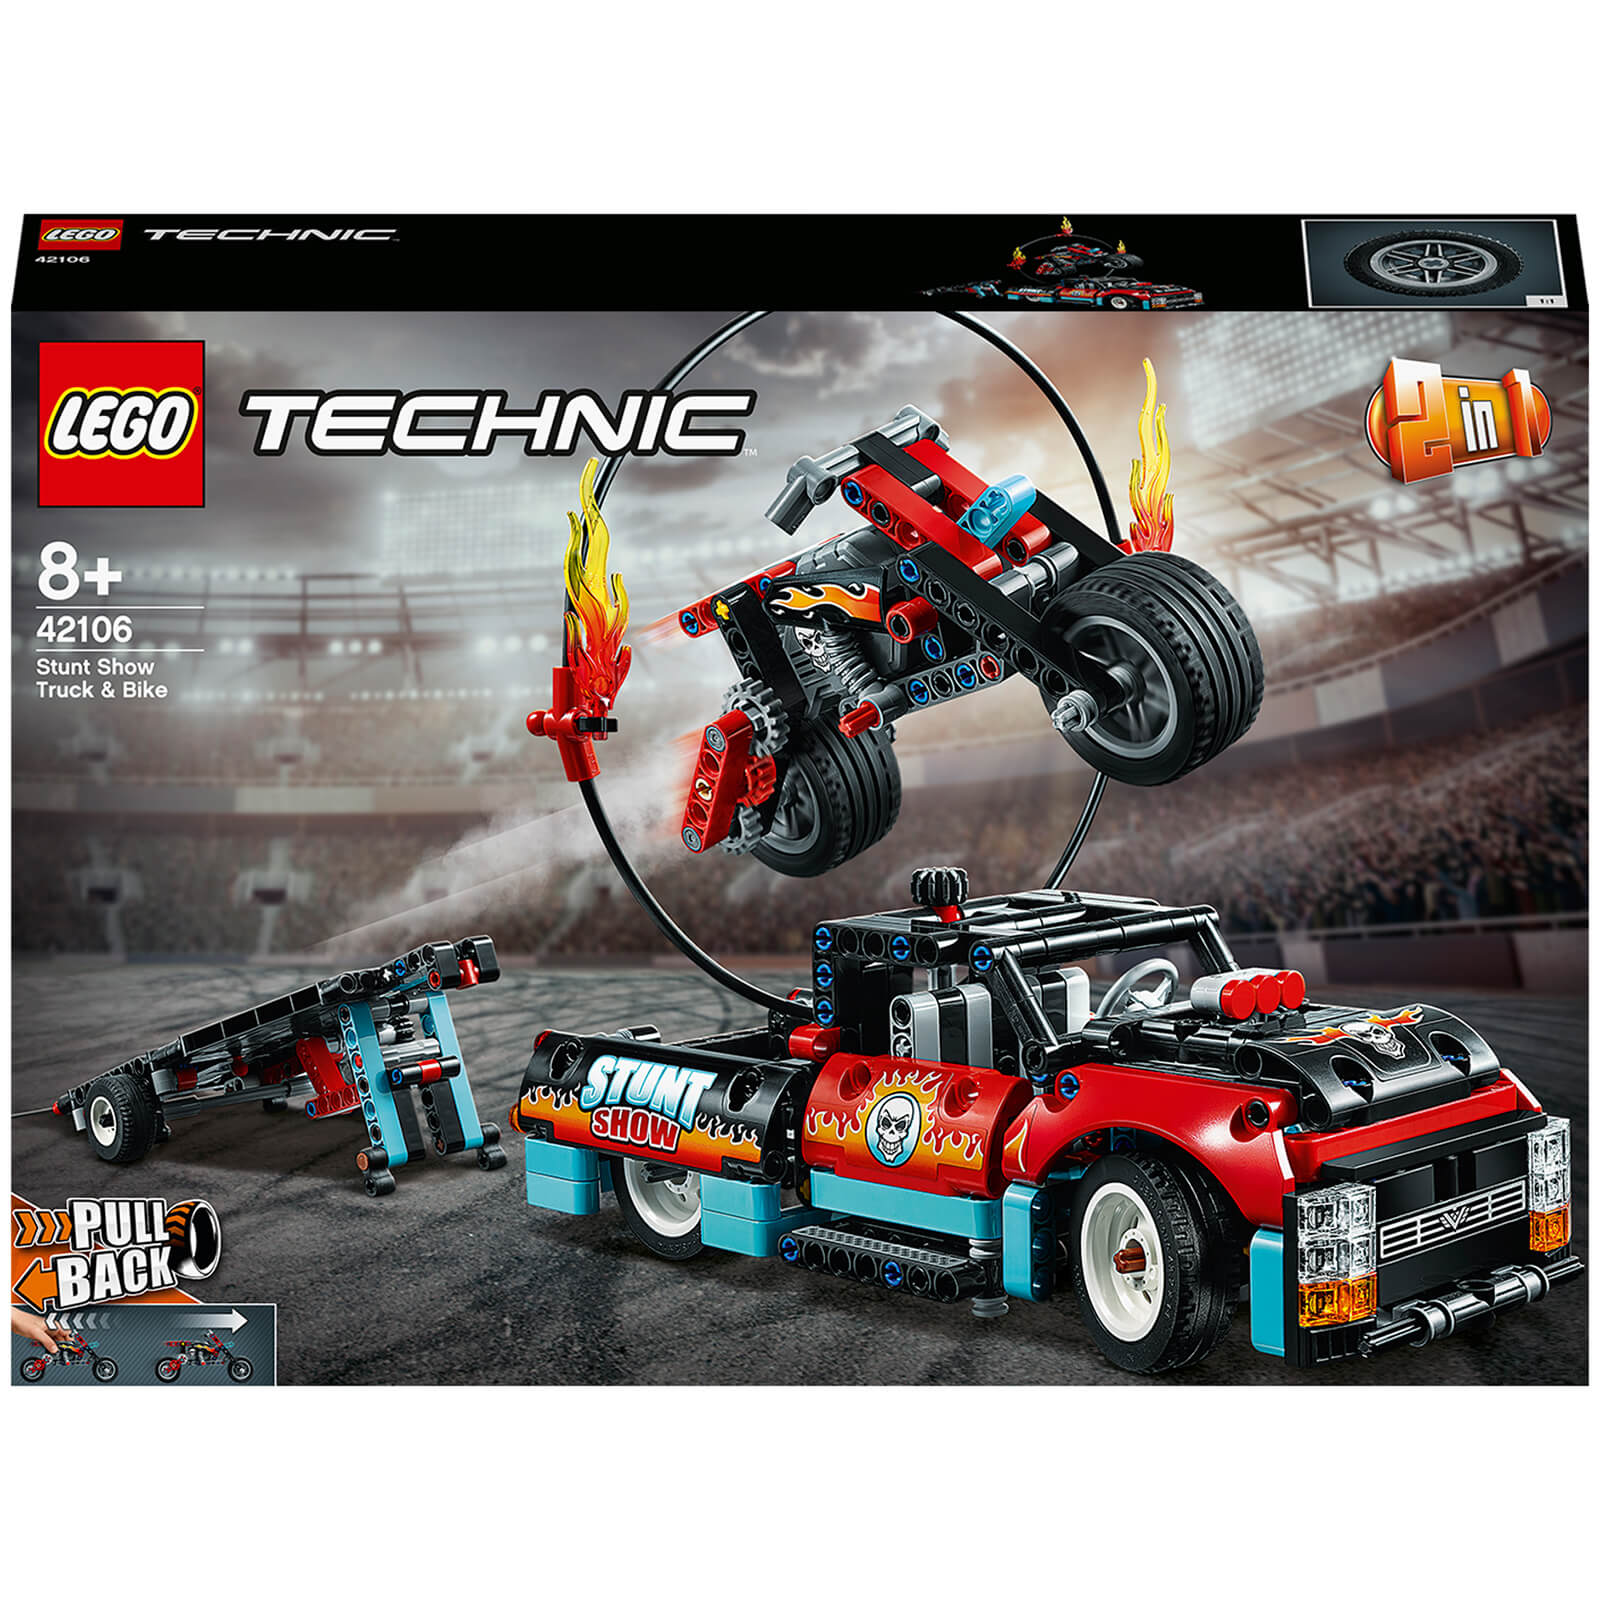 Image of 42106 LEGO® TECHNIC Stunt show with truck and motorbike